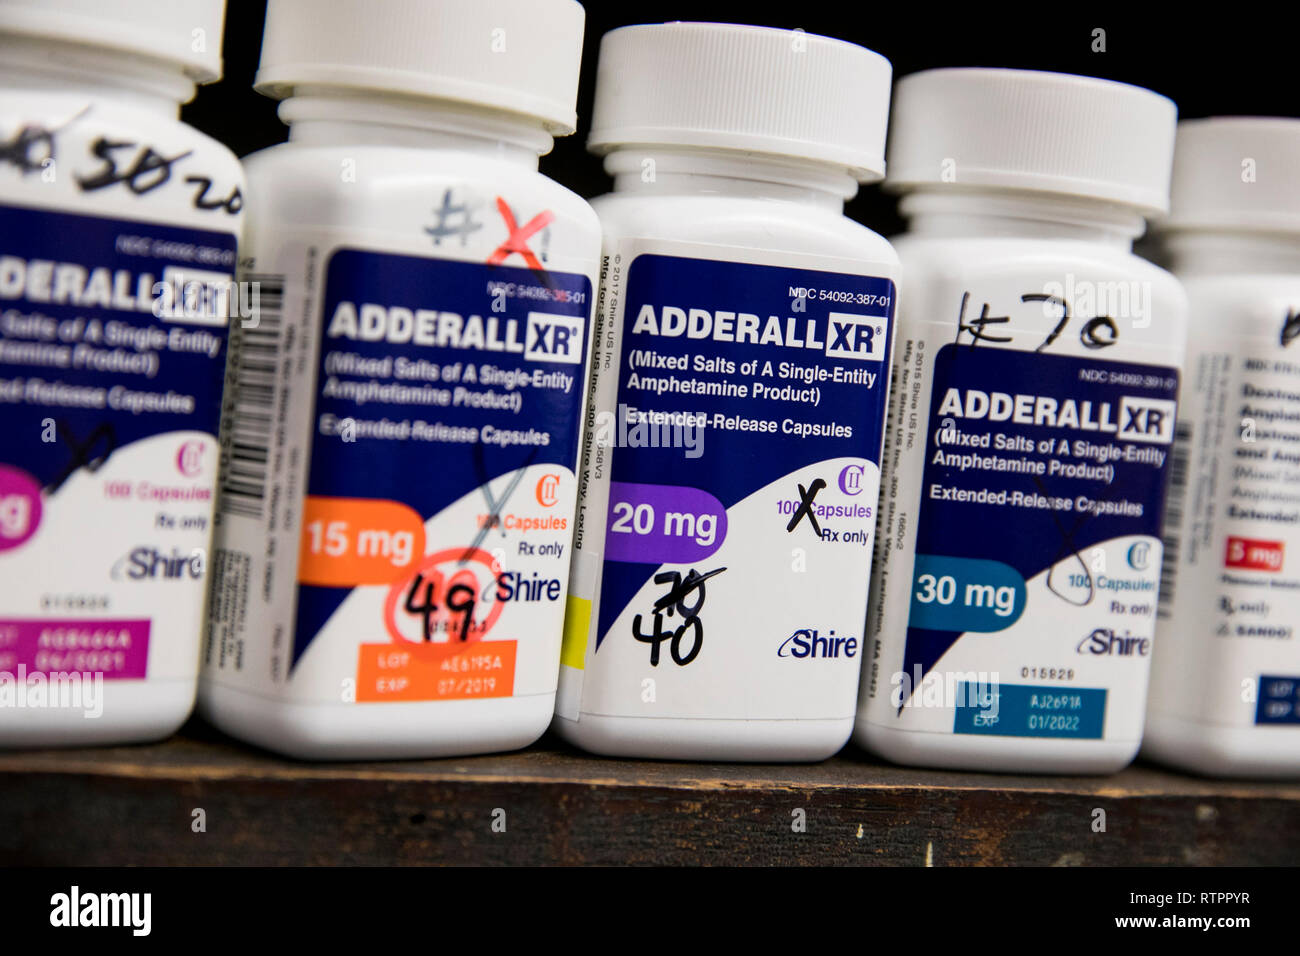 Adderall Not Diary Stock Photos & Adderall Not Diary Stock